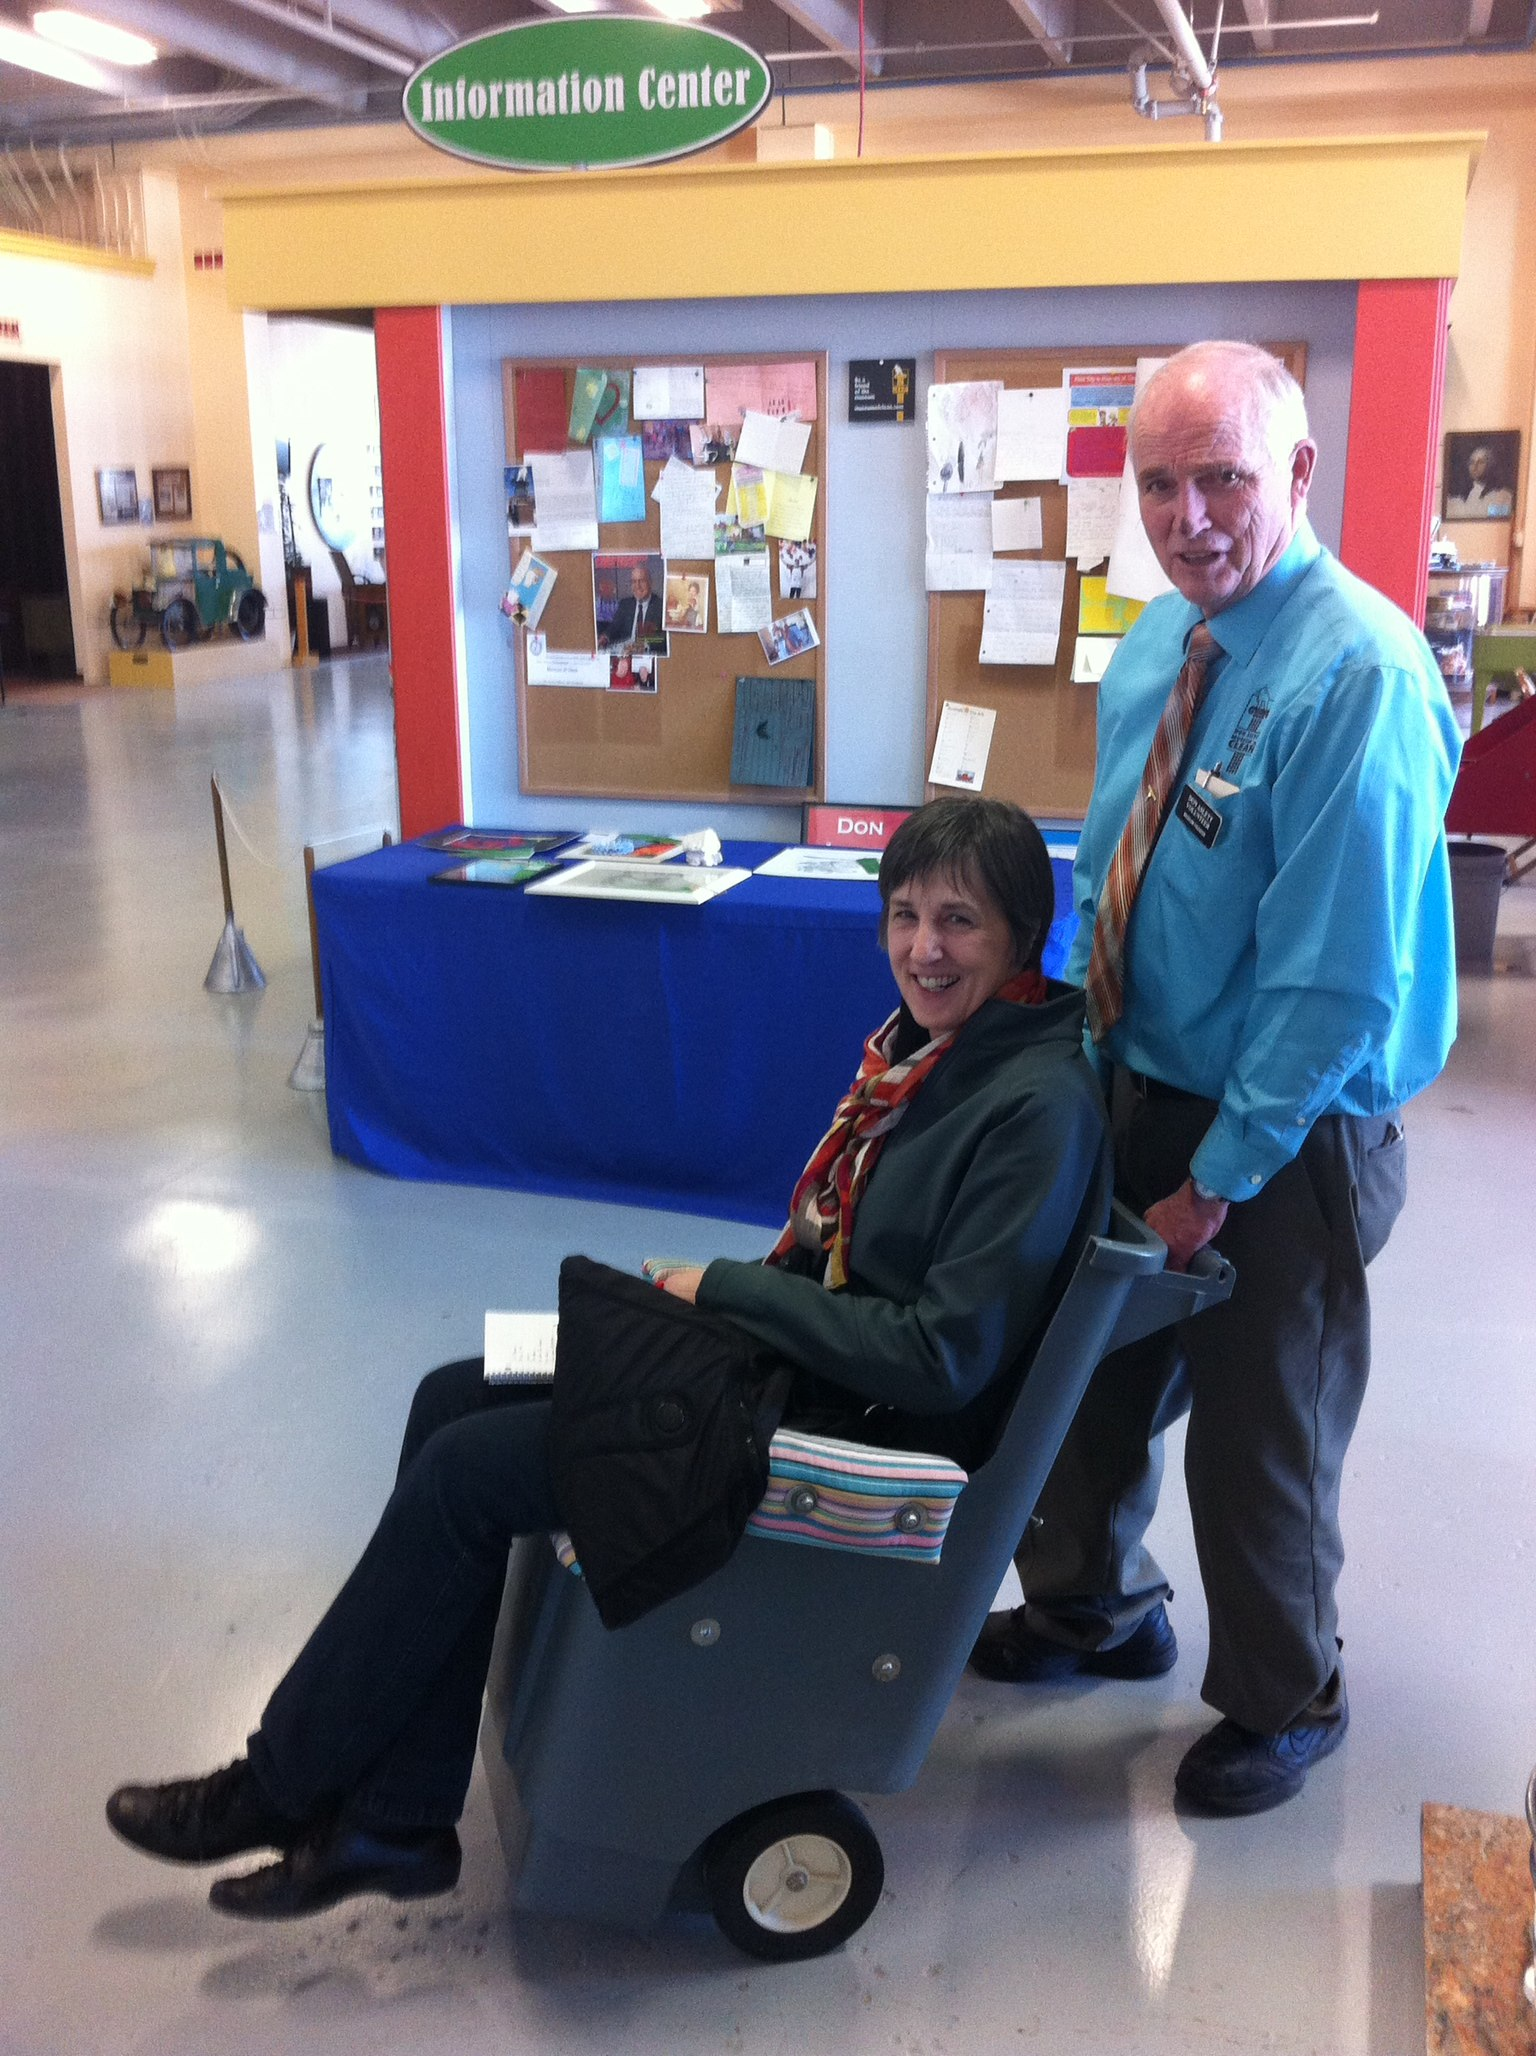 Don pushing Brenda in his wheel-chair garbage can. The museum is full of fun and kitsch.